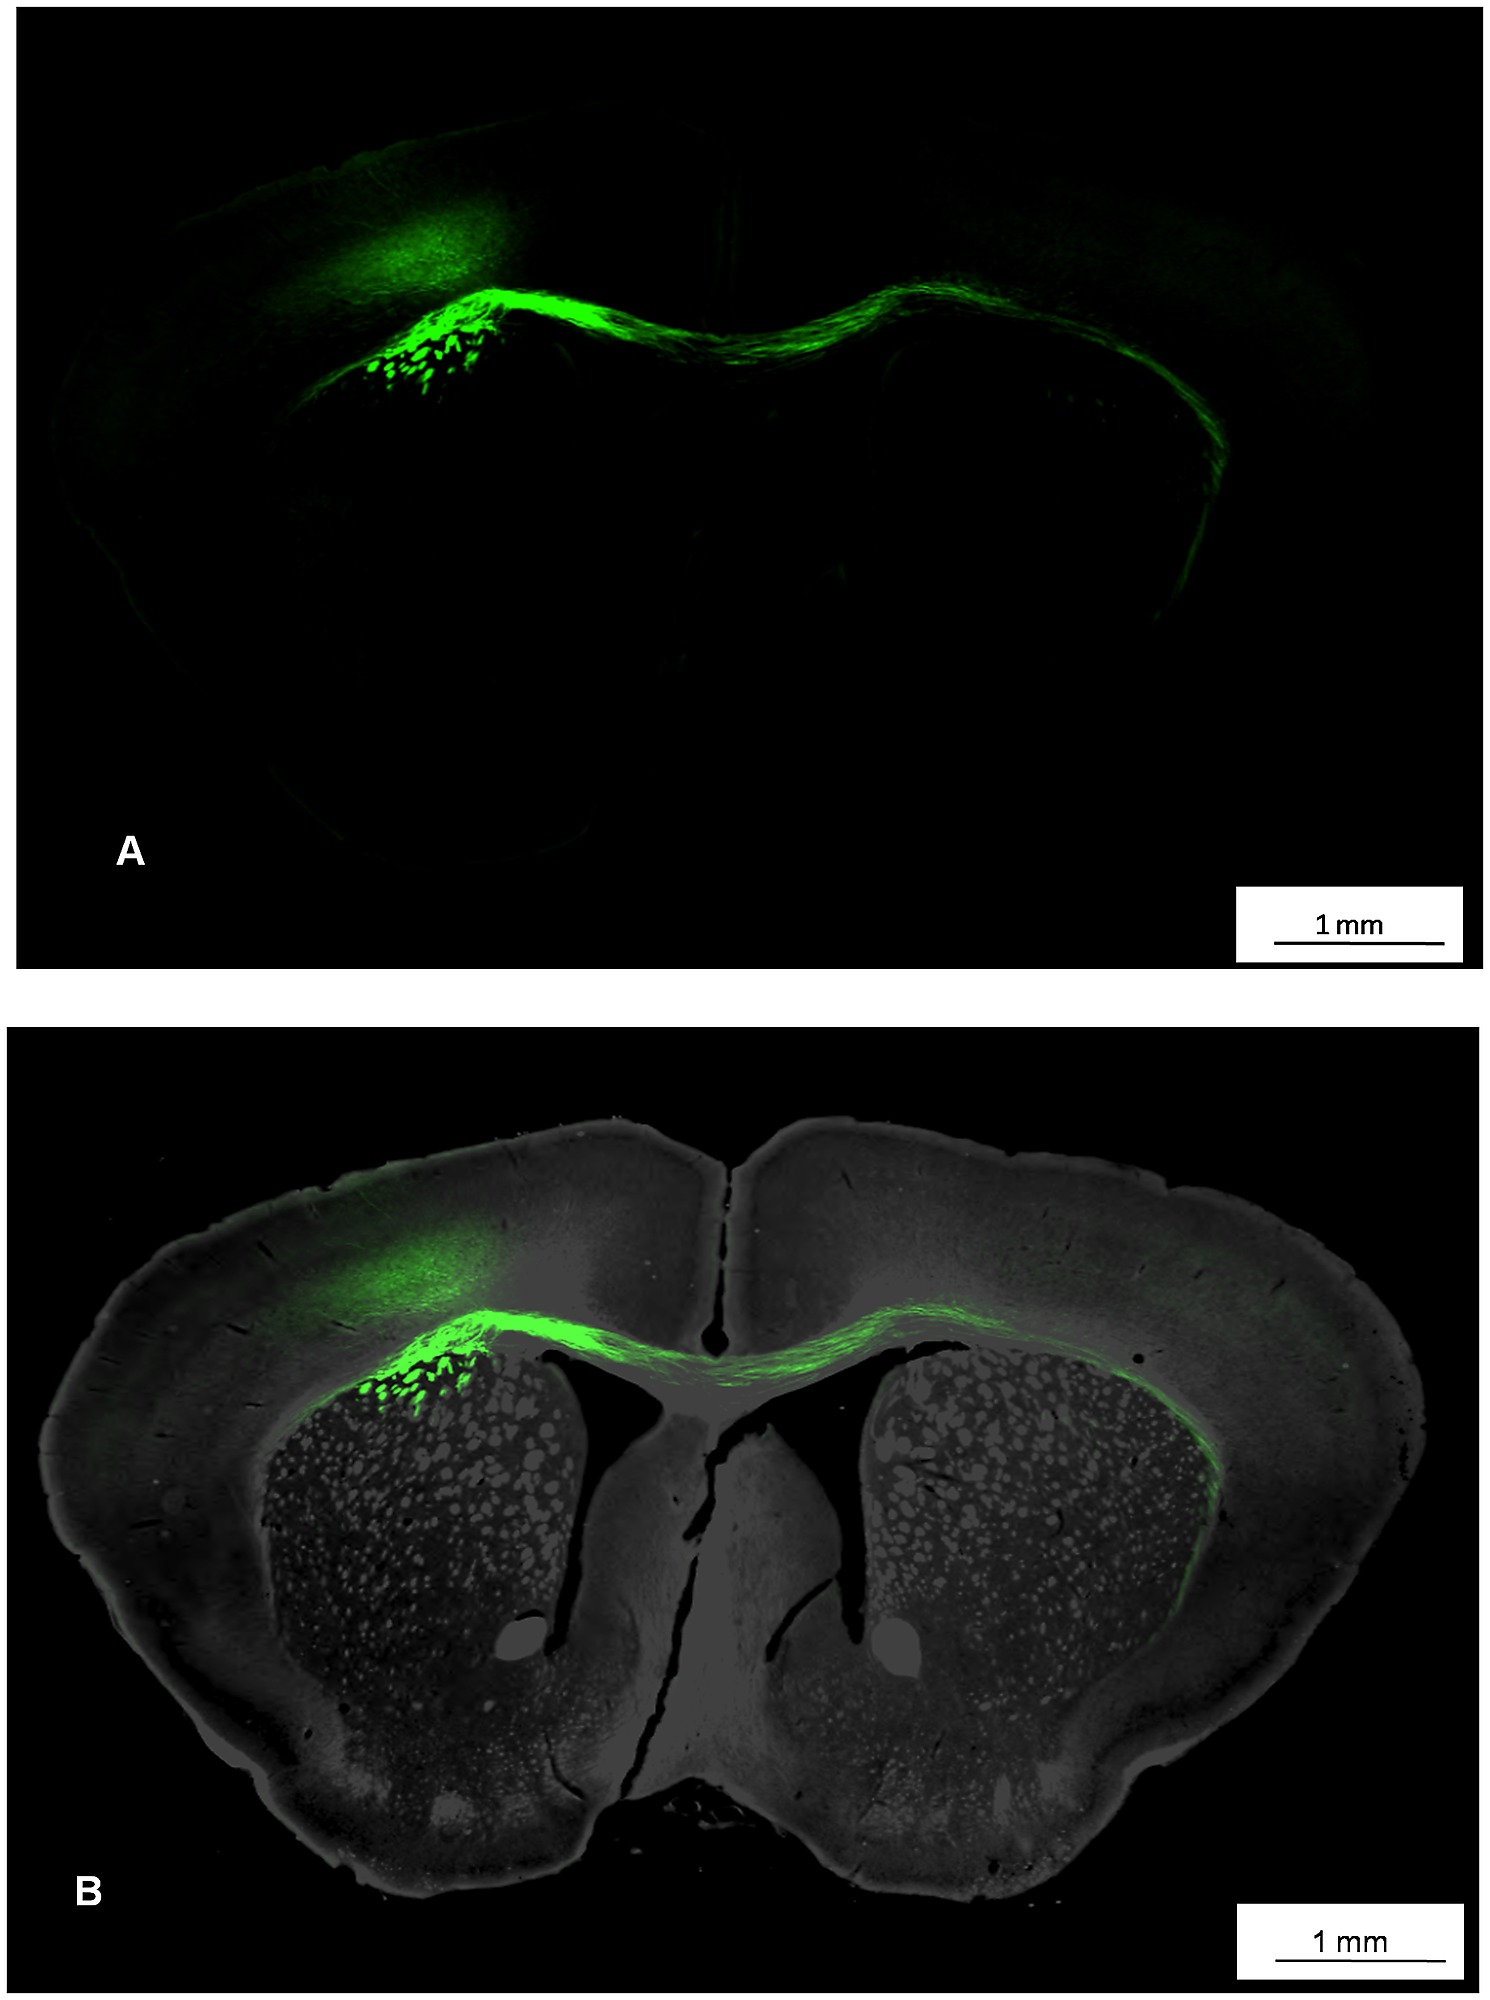 Visualization of the anatomy of a coronal mouse brain slice with ...